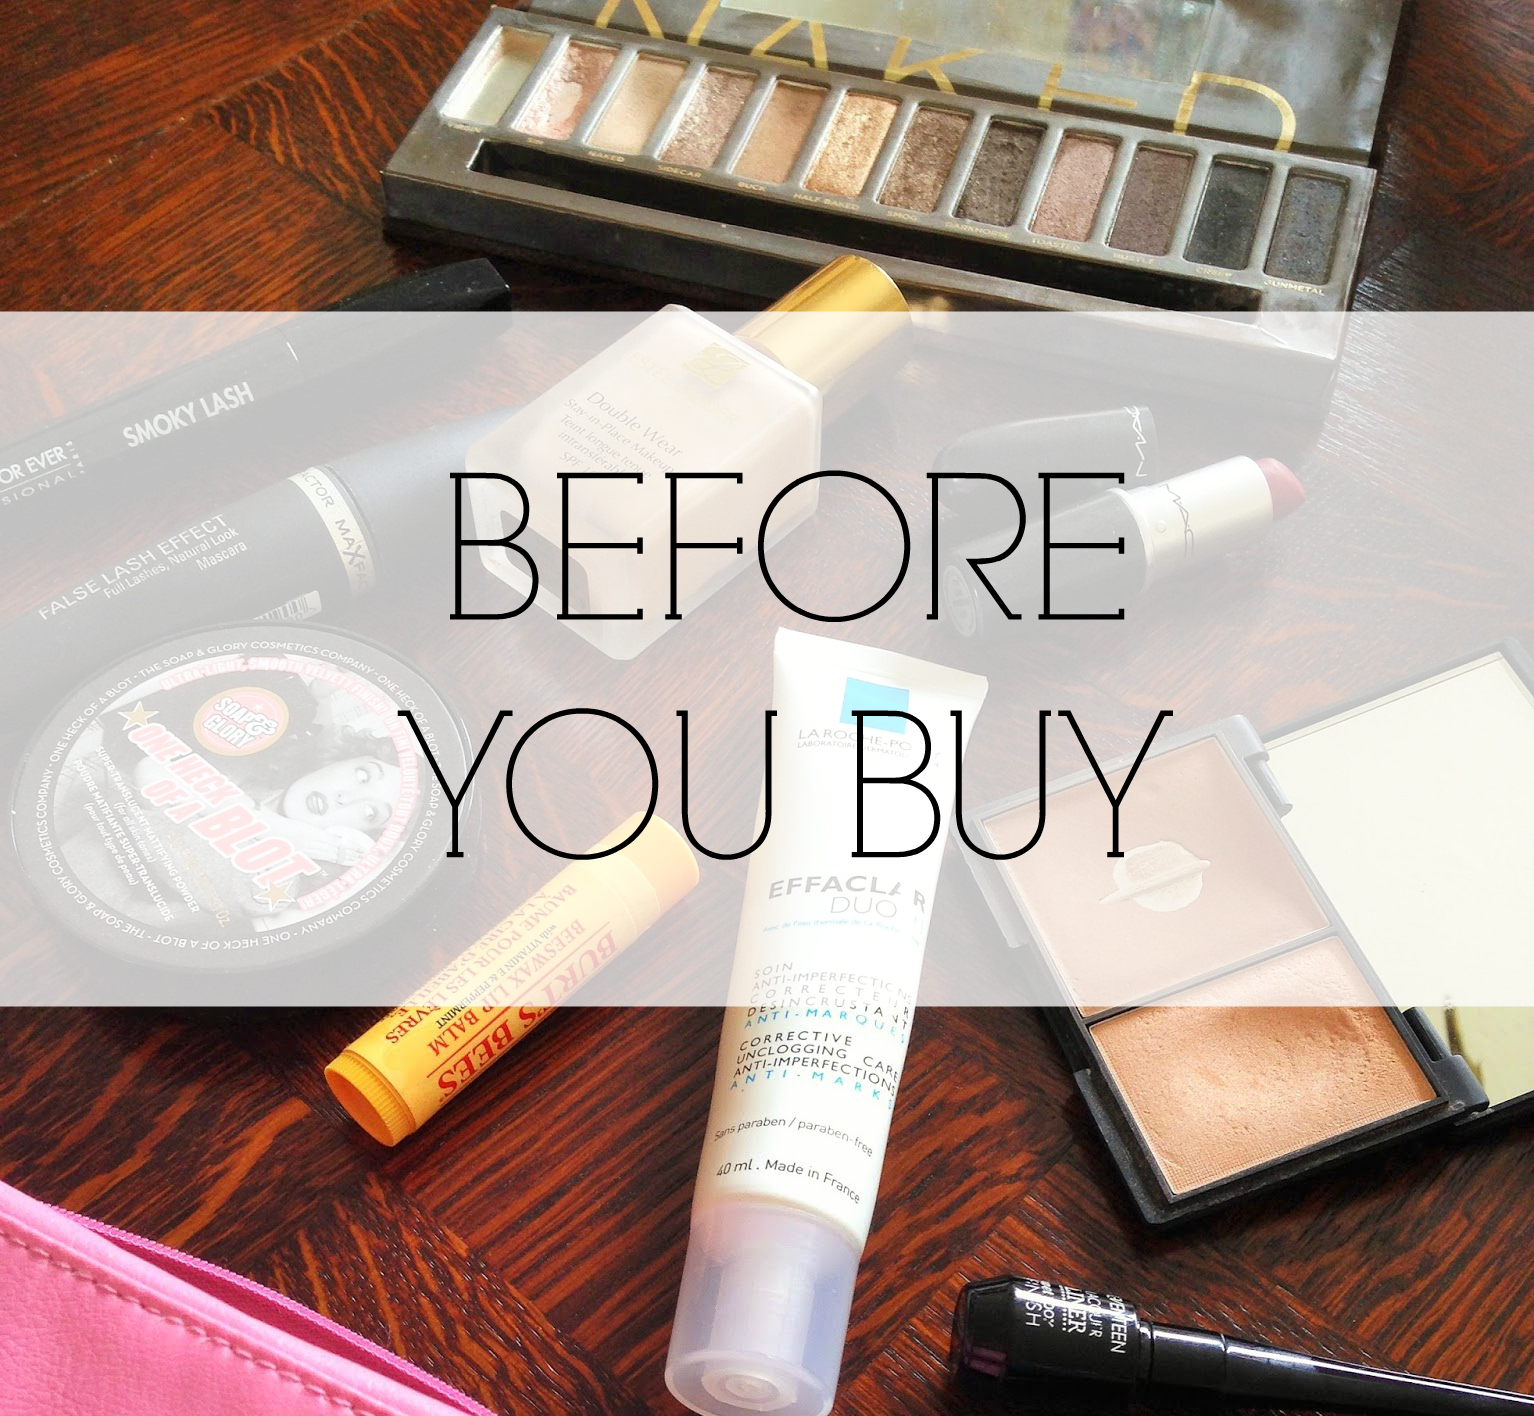 Before You Buy, tips on avoiding impulse buying